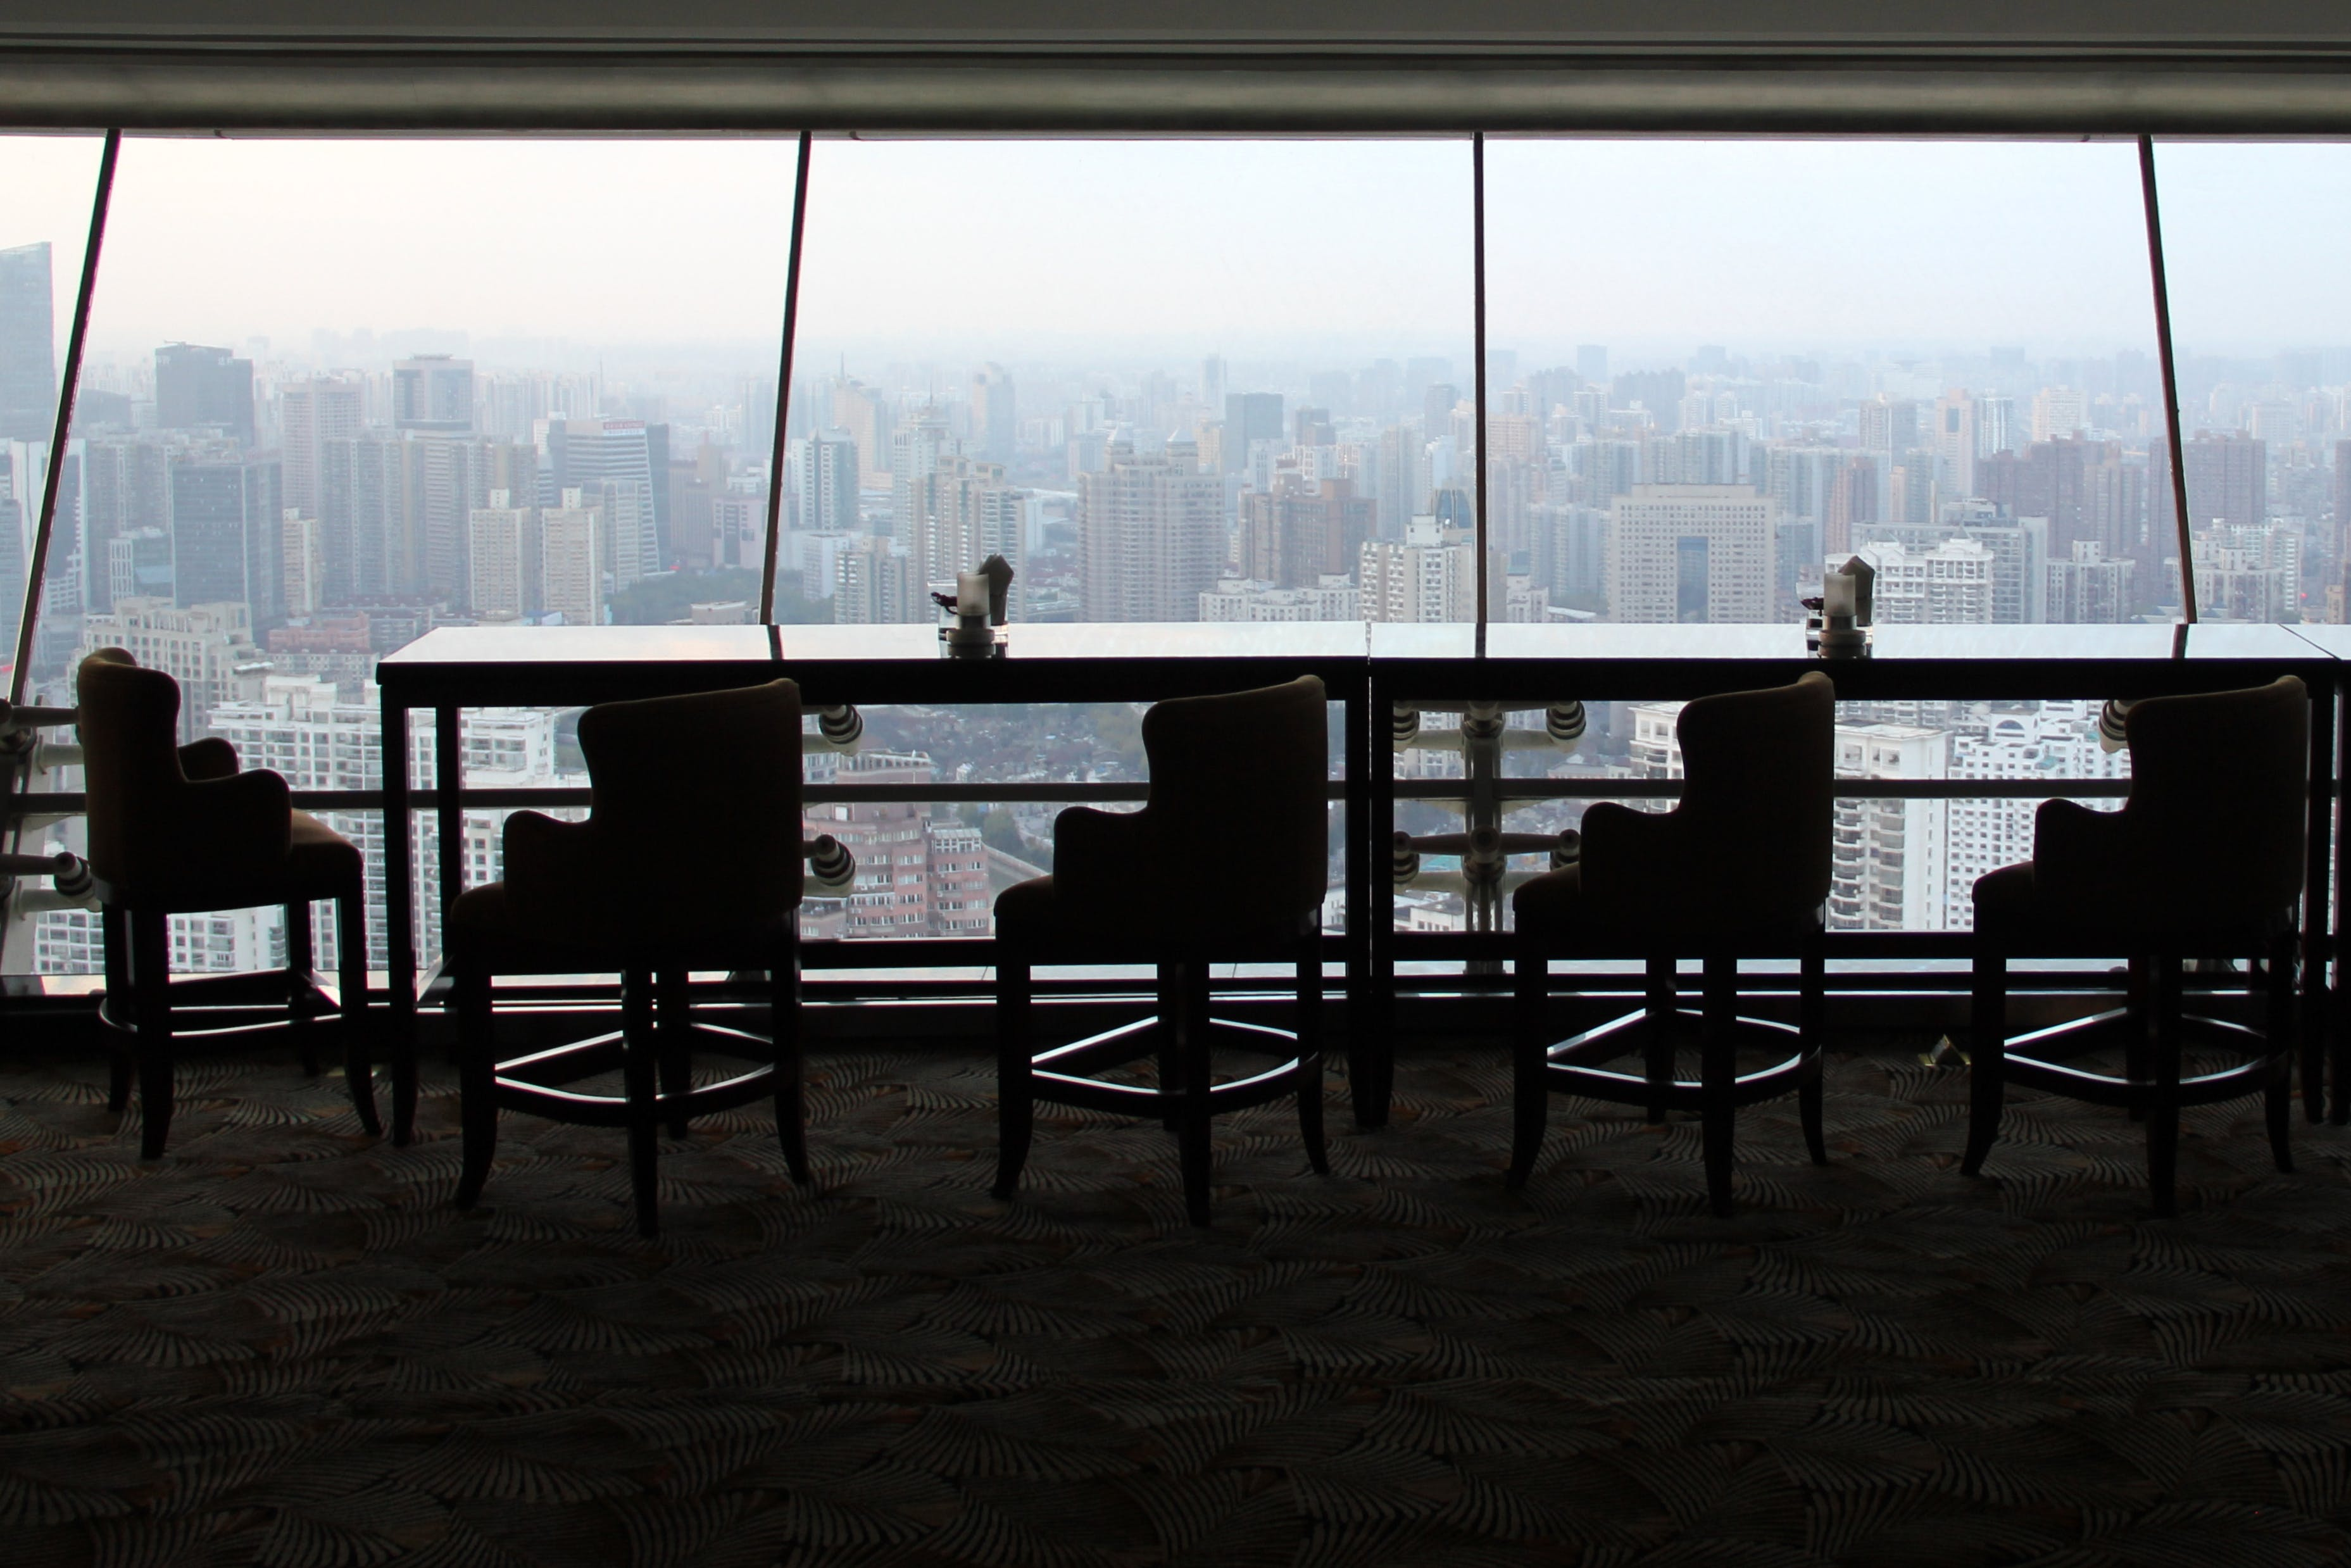 Chairs and Table Inside Building